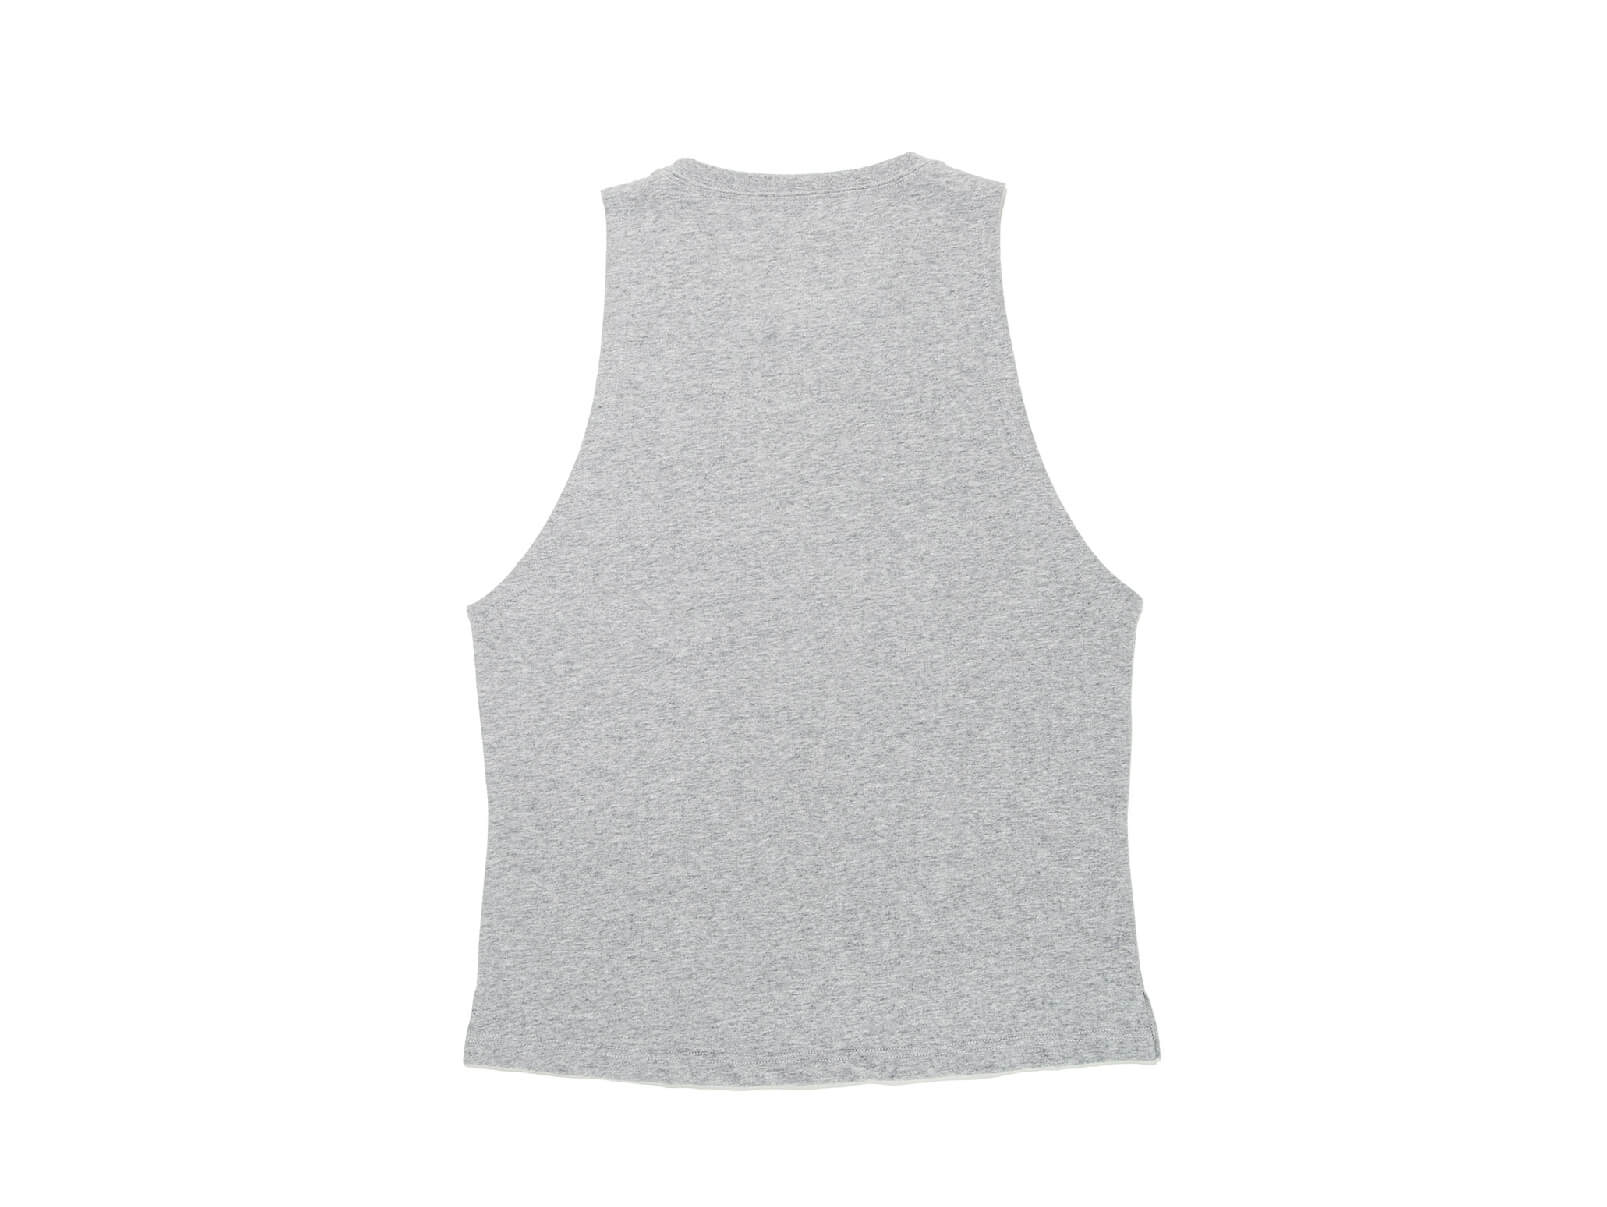 COTTON ONE POINT LOGO WIDE ARMHOLE TANK TOP